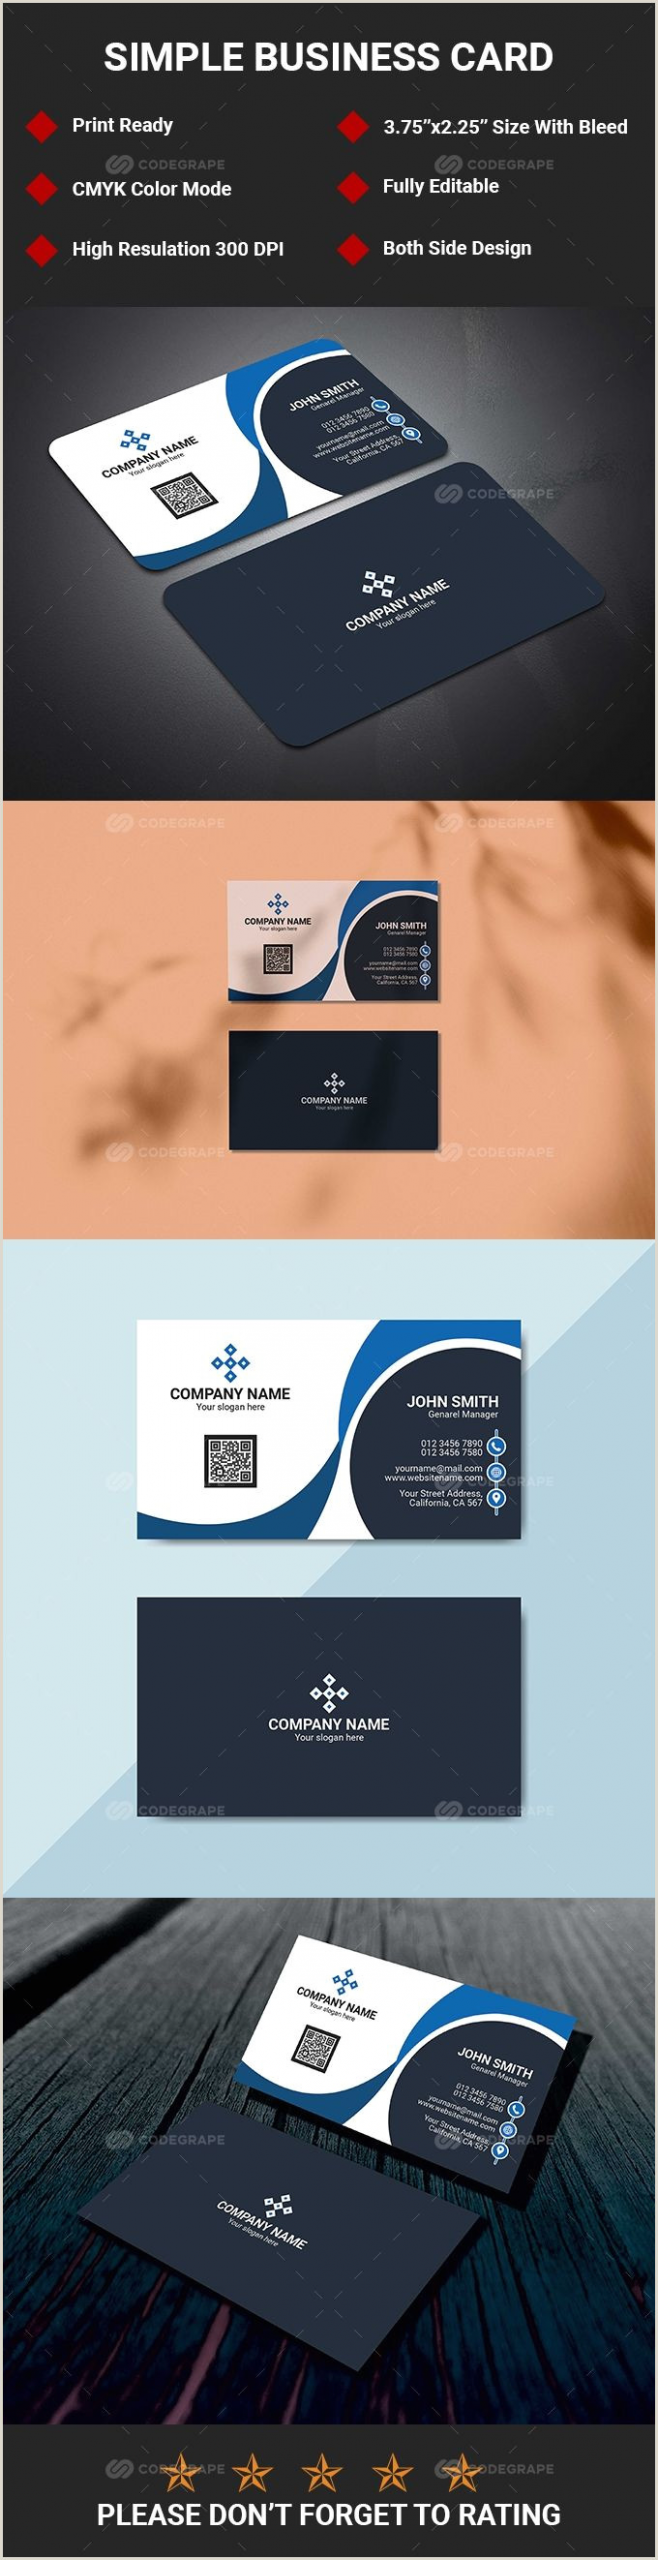 Business Cards With 2 Names Clean Business Card